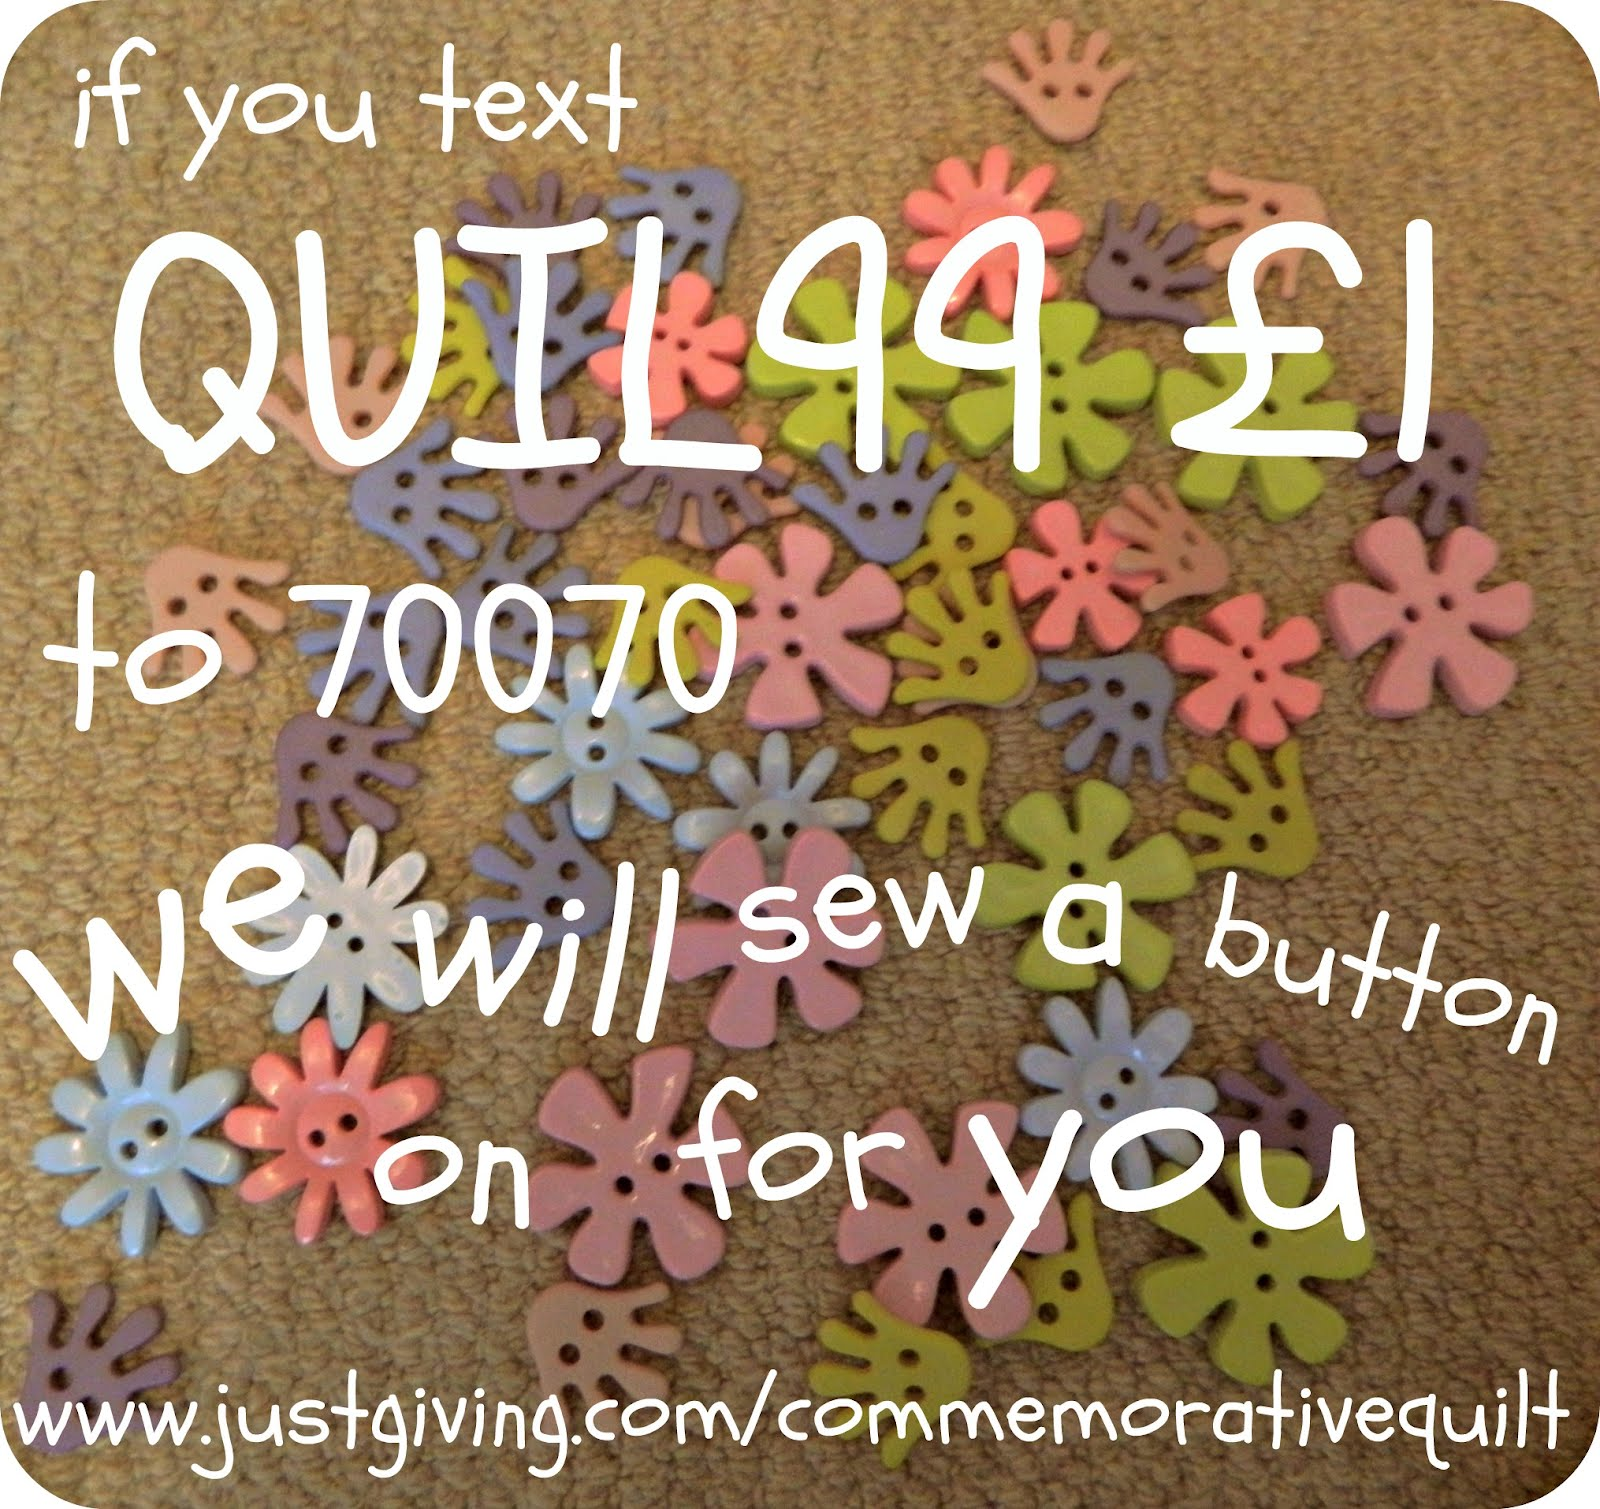 Give us a Helping Hand for  1 and sponsor a button on the Special Care quilt!